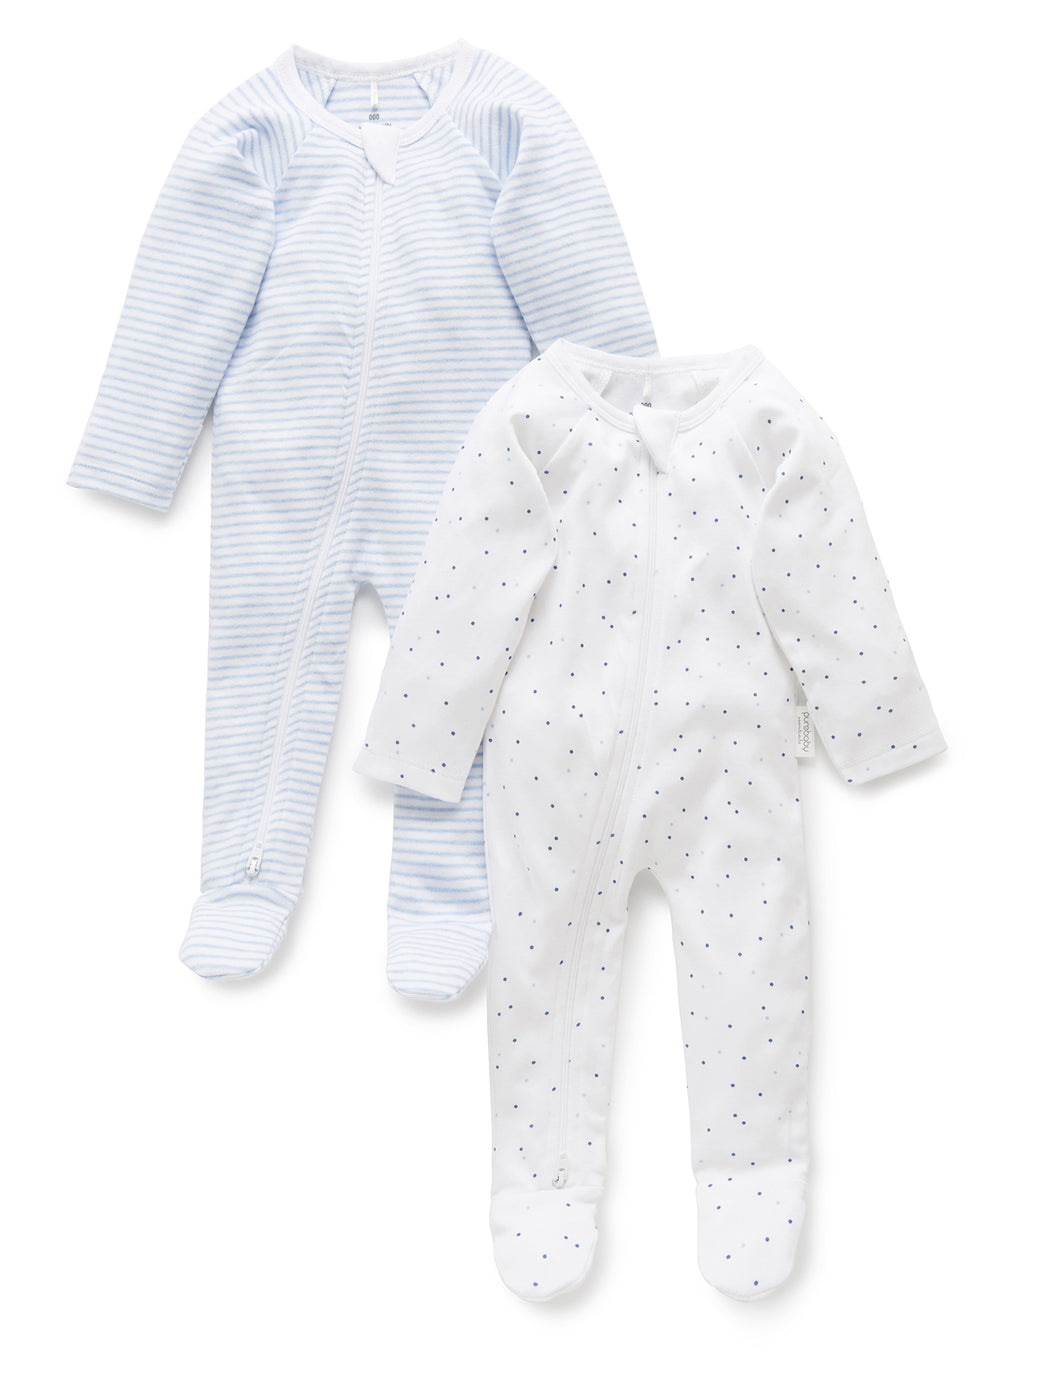 Pure Baby Zip Growsuit 2 Pack Premature Baby Clothing